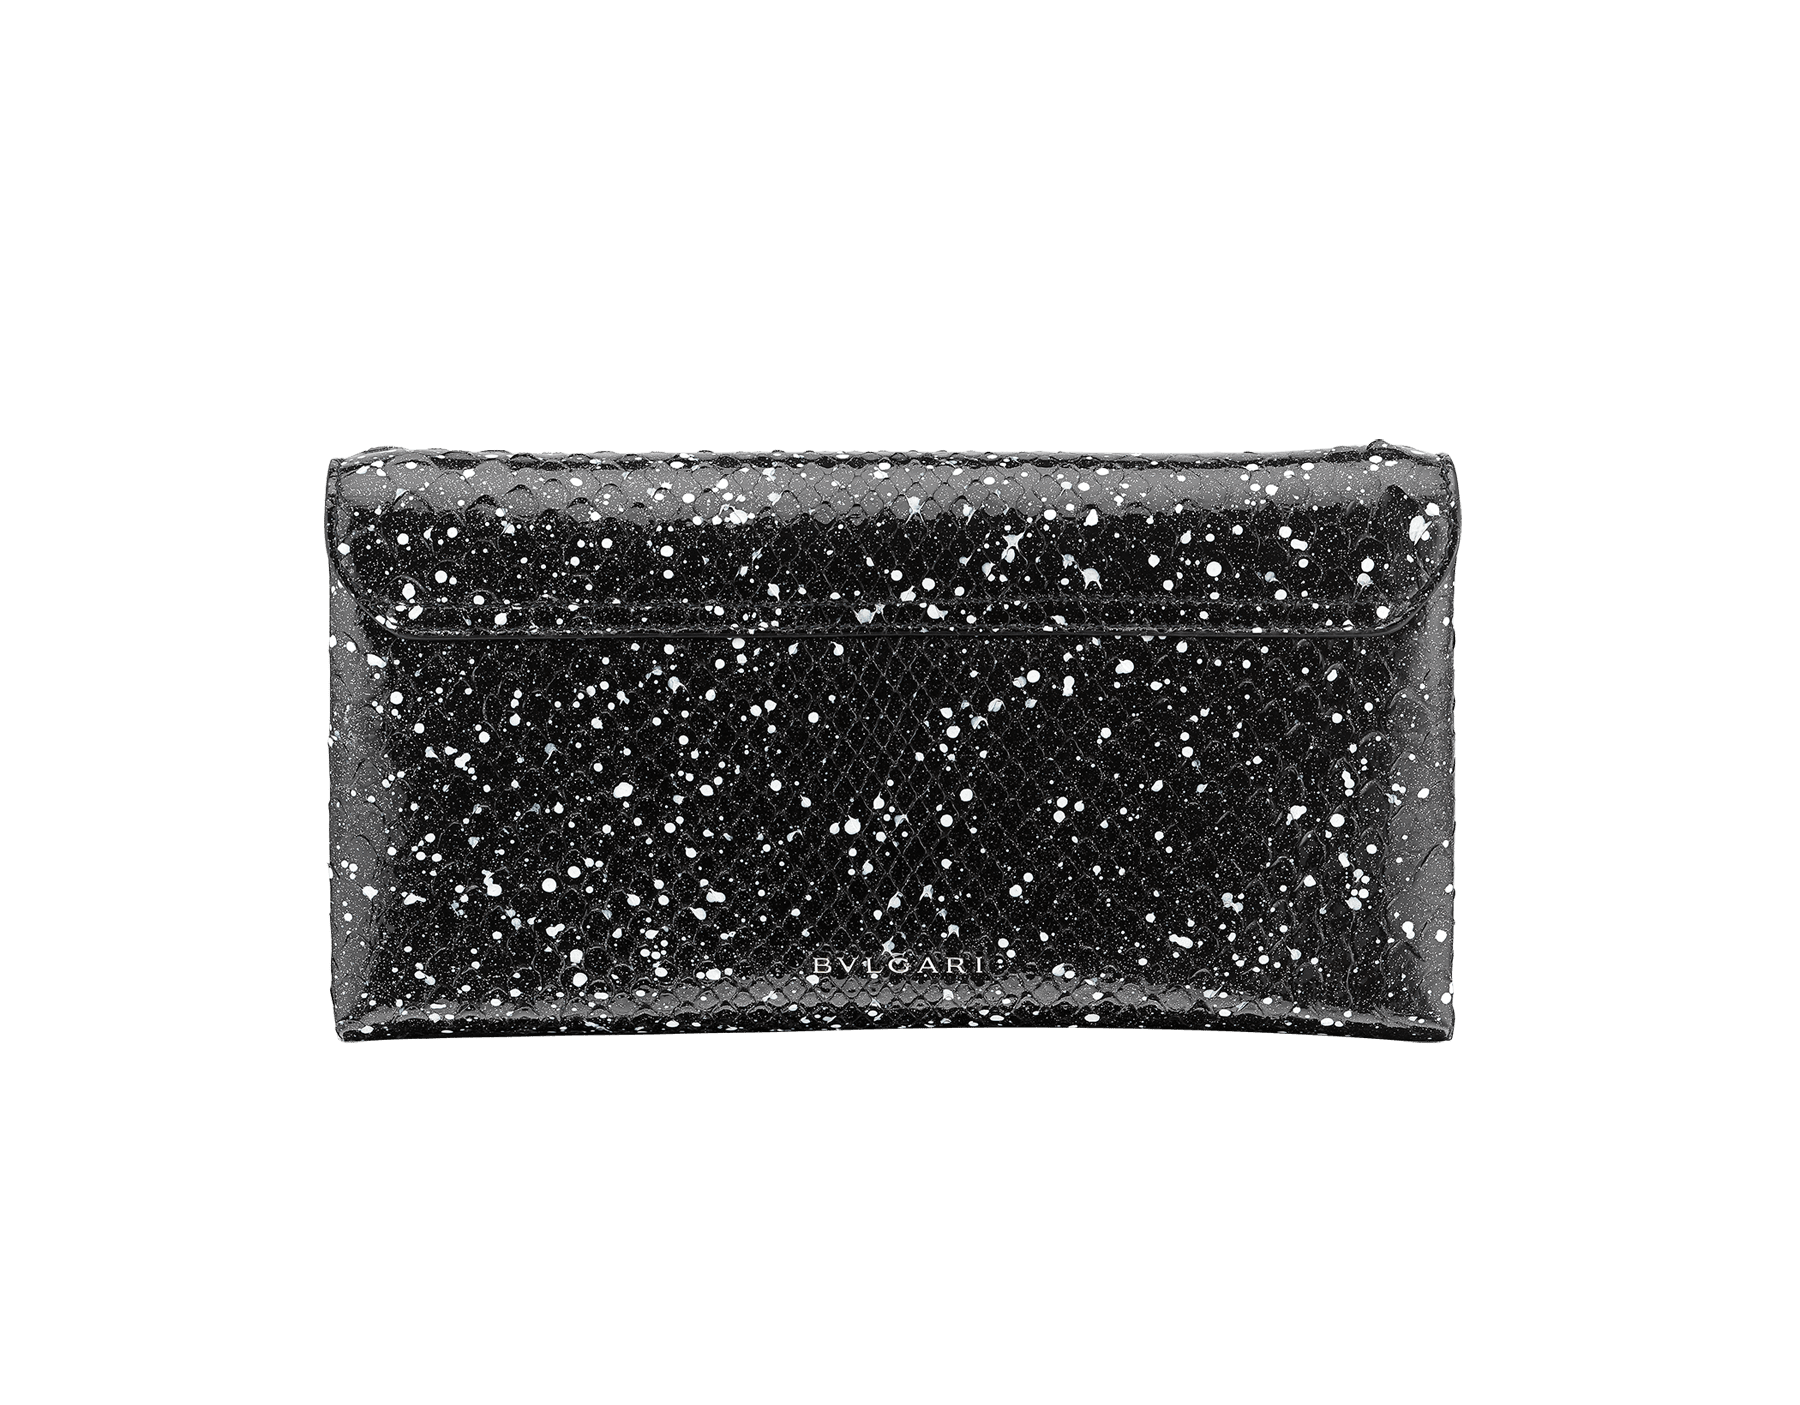 Serpenti evening clutch in black and white Cosmic python skin. Snakehead stud closure with tassel in palladium plated brass decorated with black and white enamel, and black onyx eyes. 288528 image 3